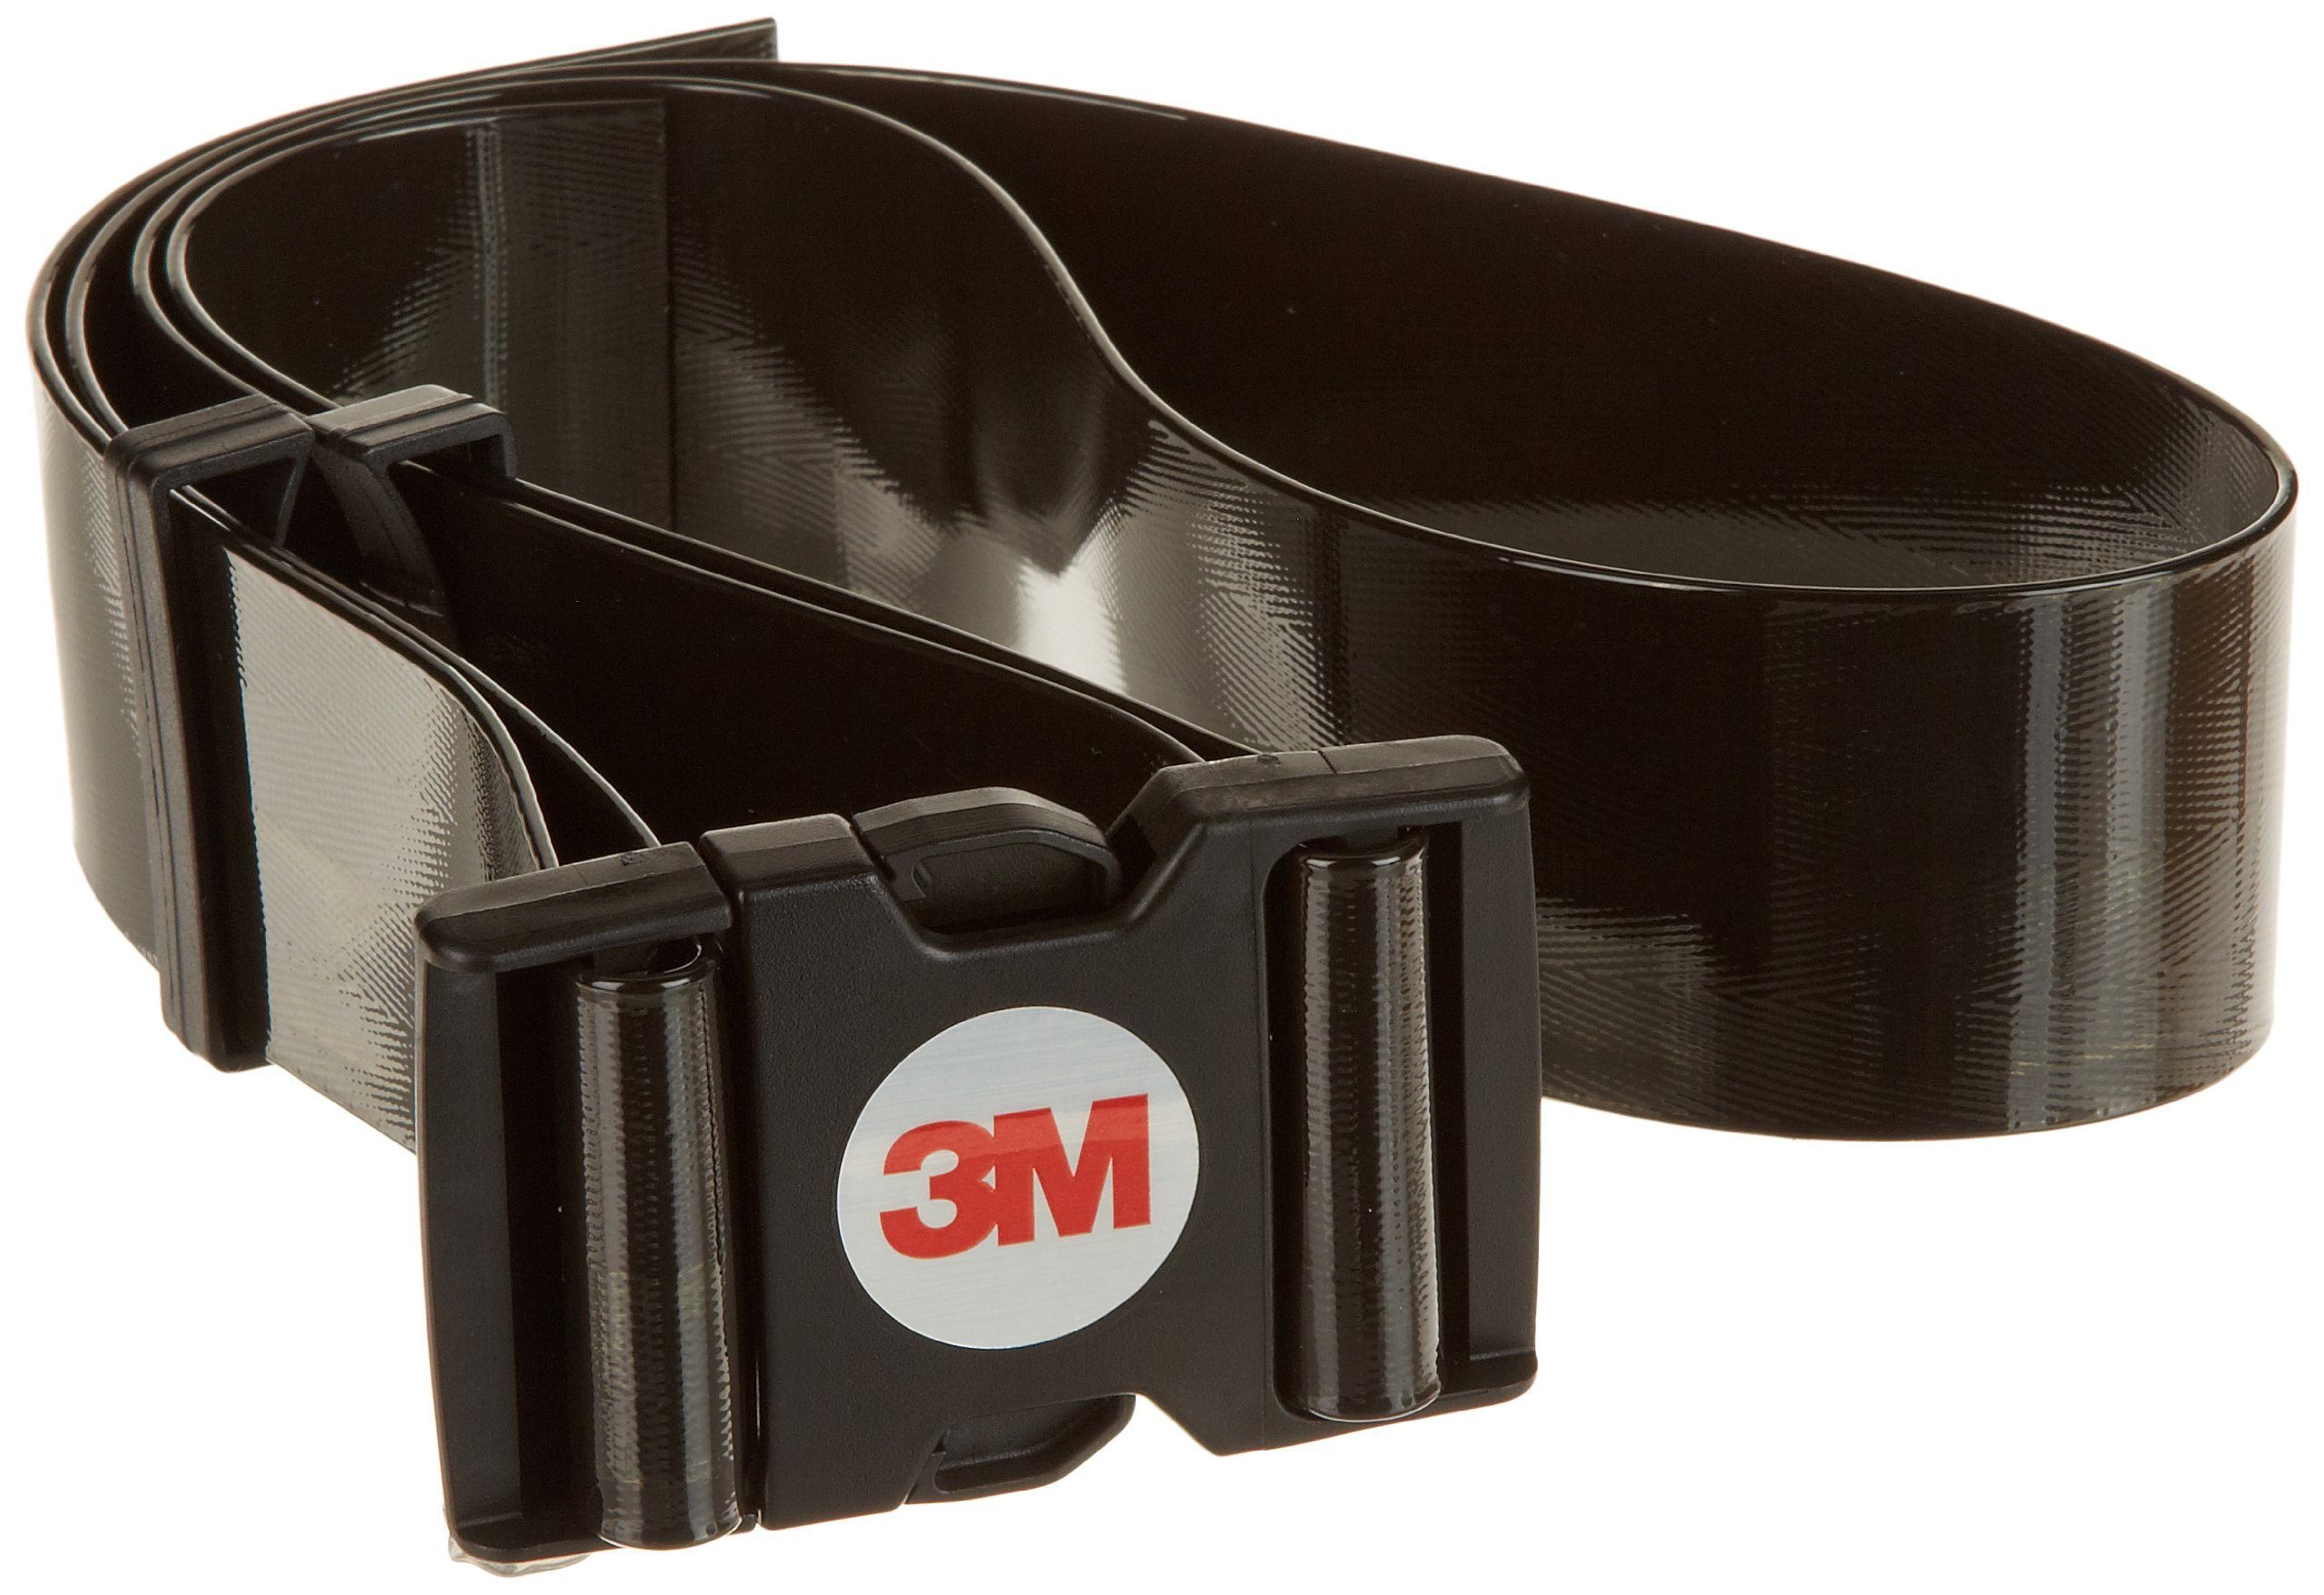 3M Belt 520-02-23R01, Breathe Easy, Decontaminable, 50'' Length x 2'' Width